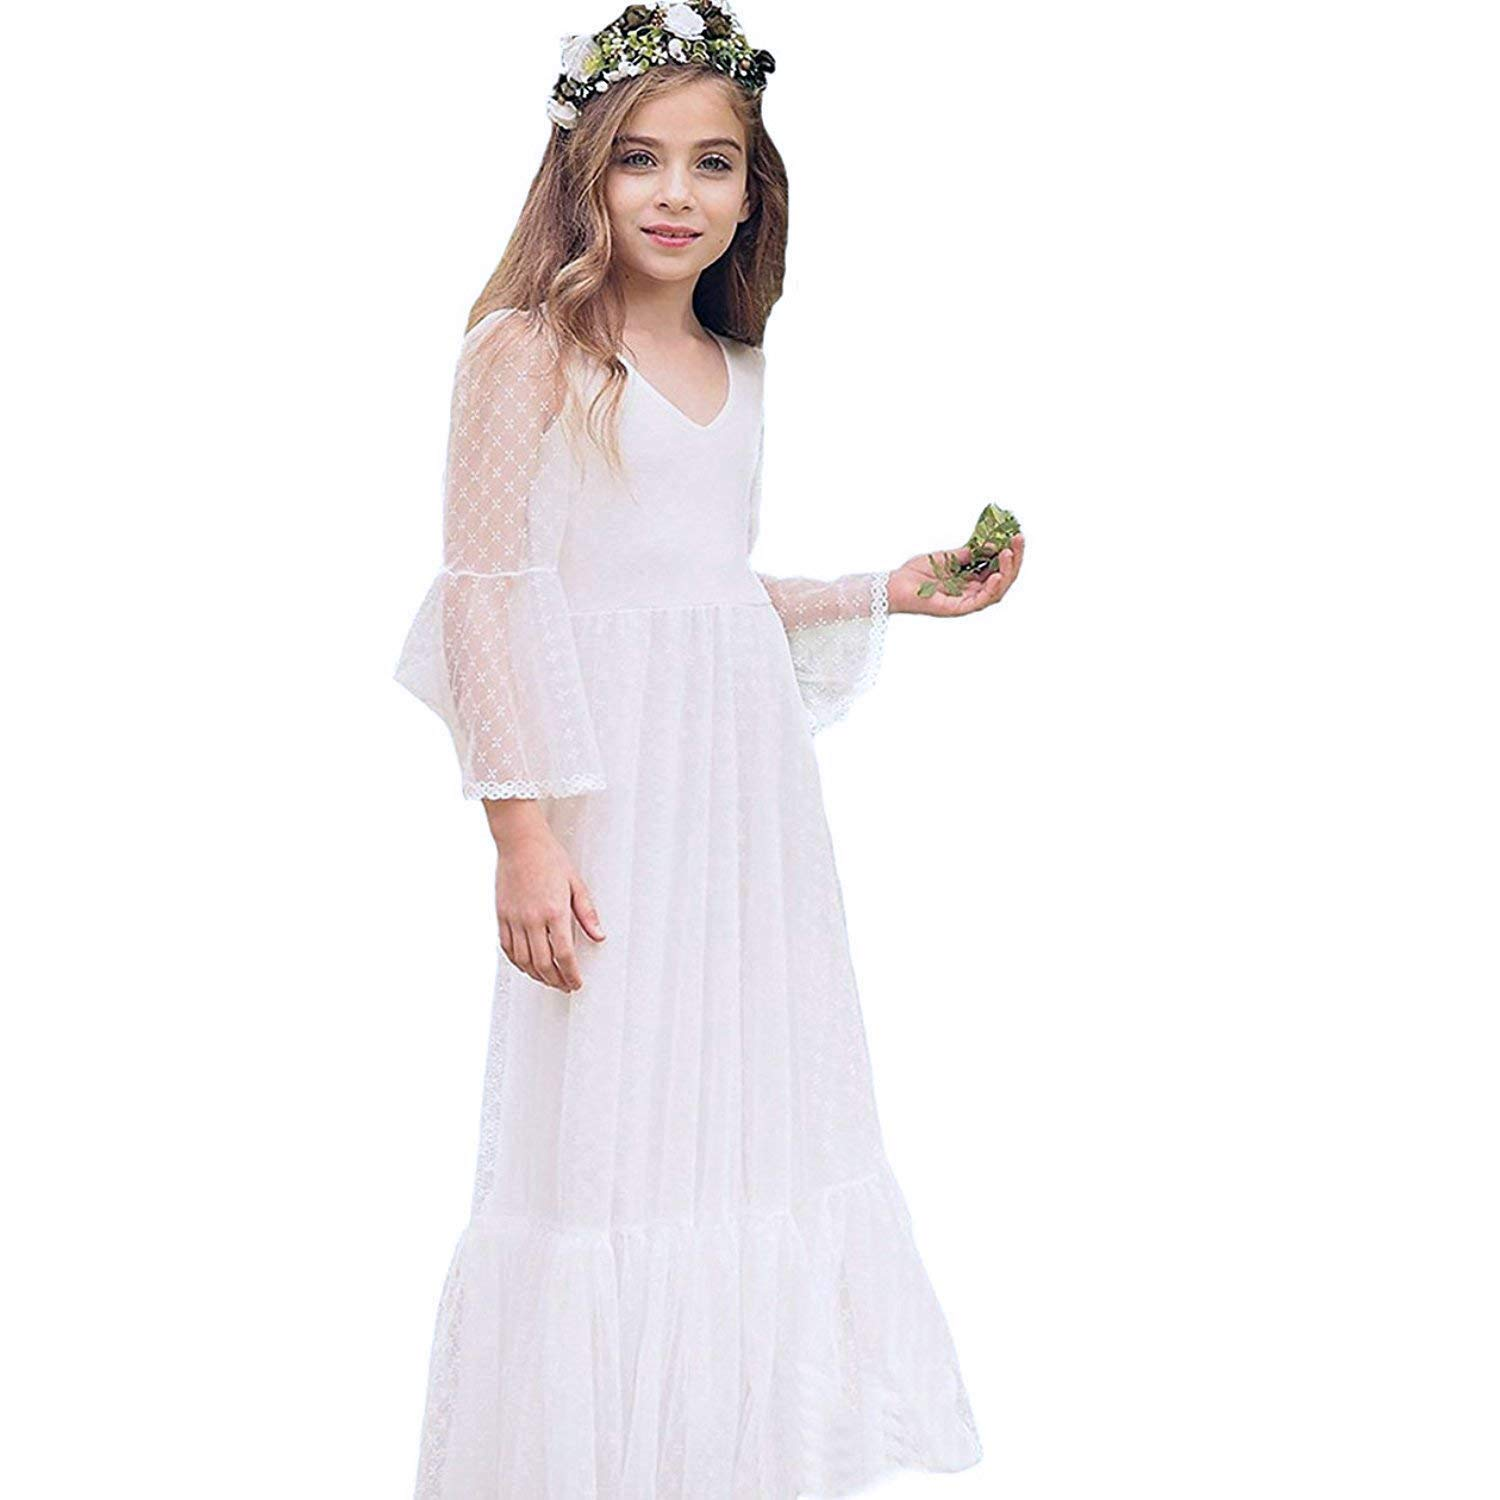 Sittingley Fancy Long Sleeves Girls First Communion Dresses 1-12 Year Old